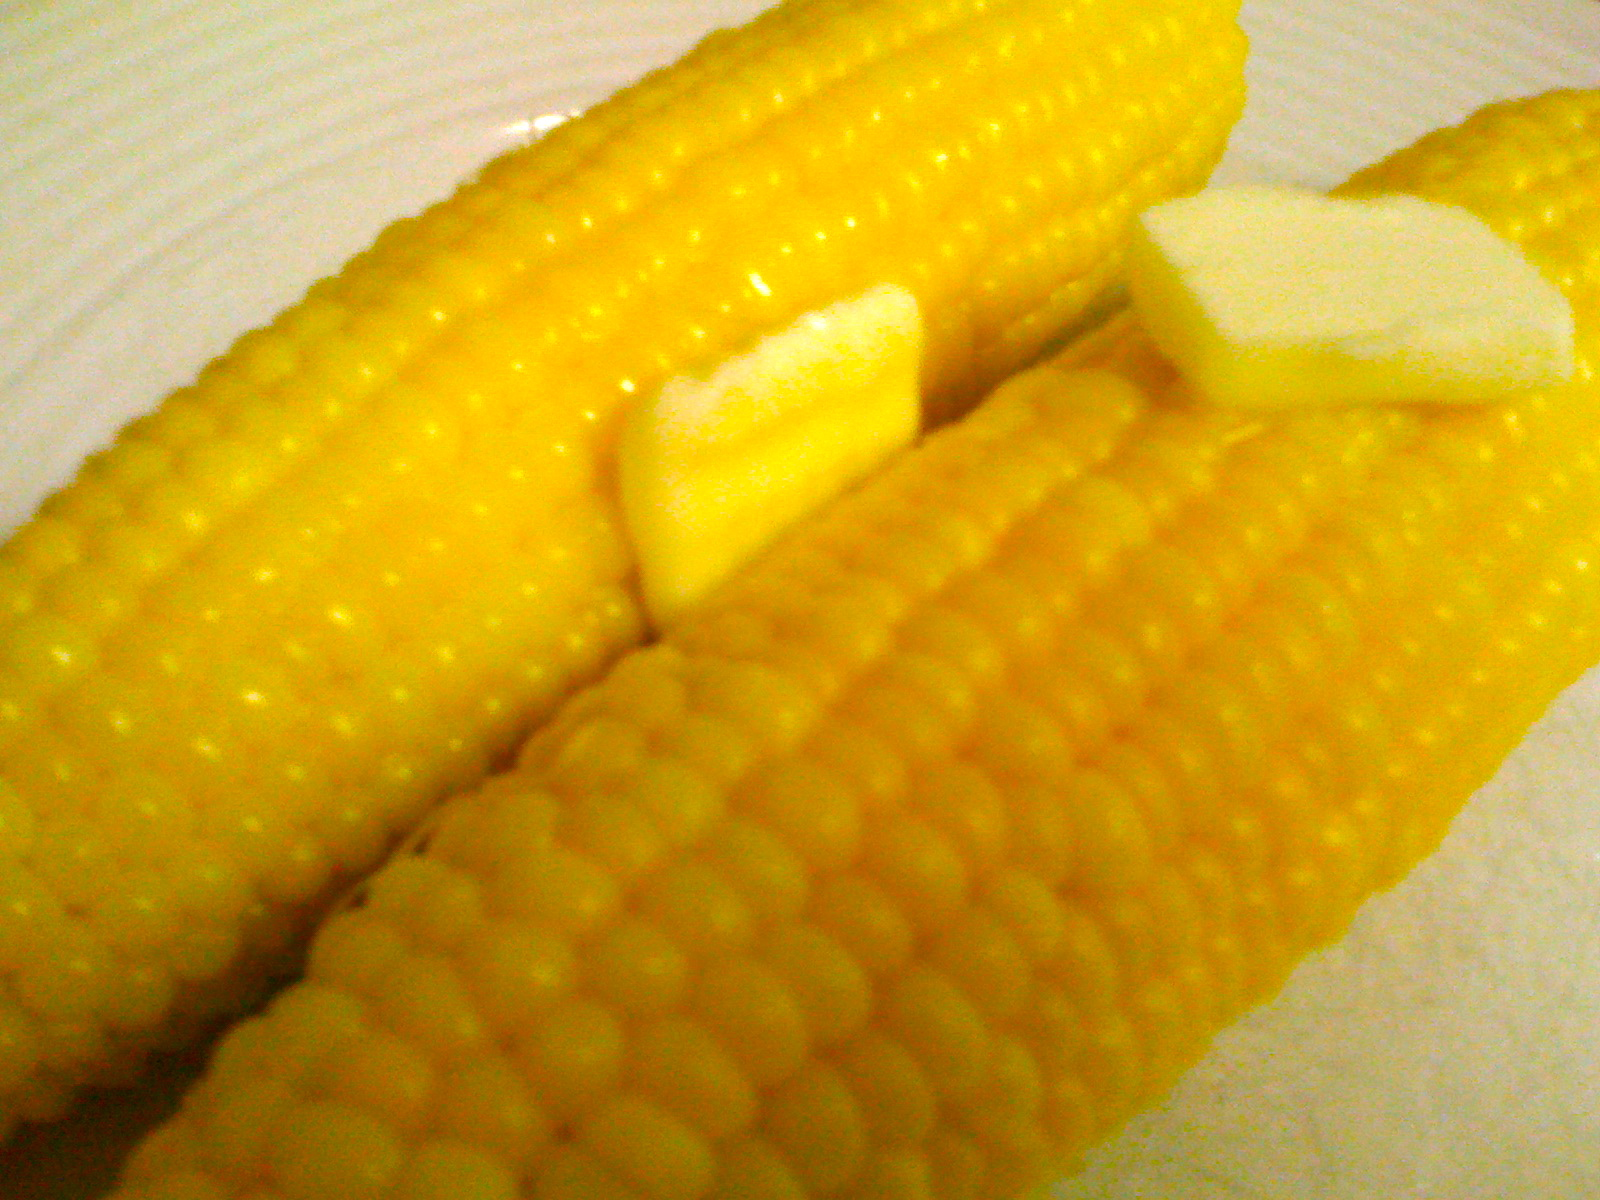 corn sex chat The shape and color are supposed to resemble a kernel of corn upon seeing  these  they are the halloween version of the valentine's day conversation  hearts.